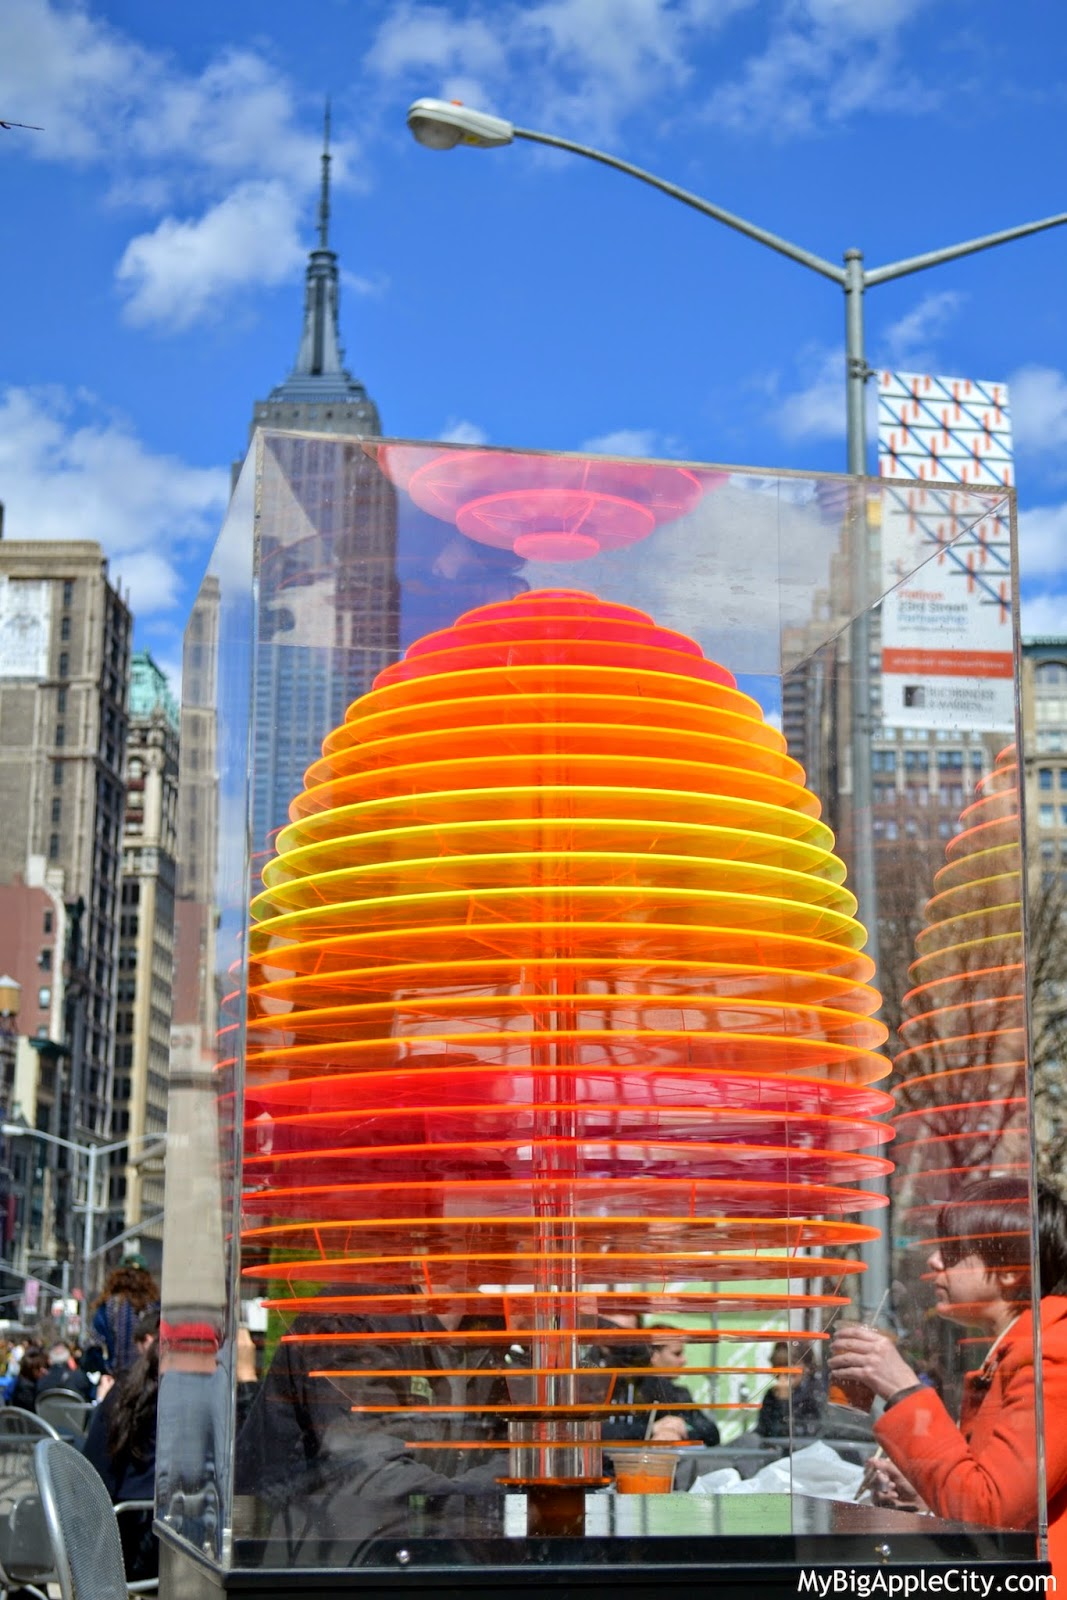 neon-egg-art-nyc-mybigapplecity